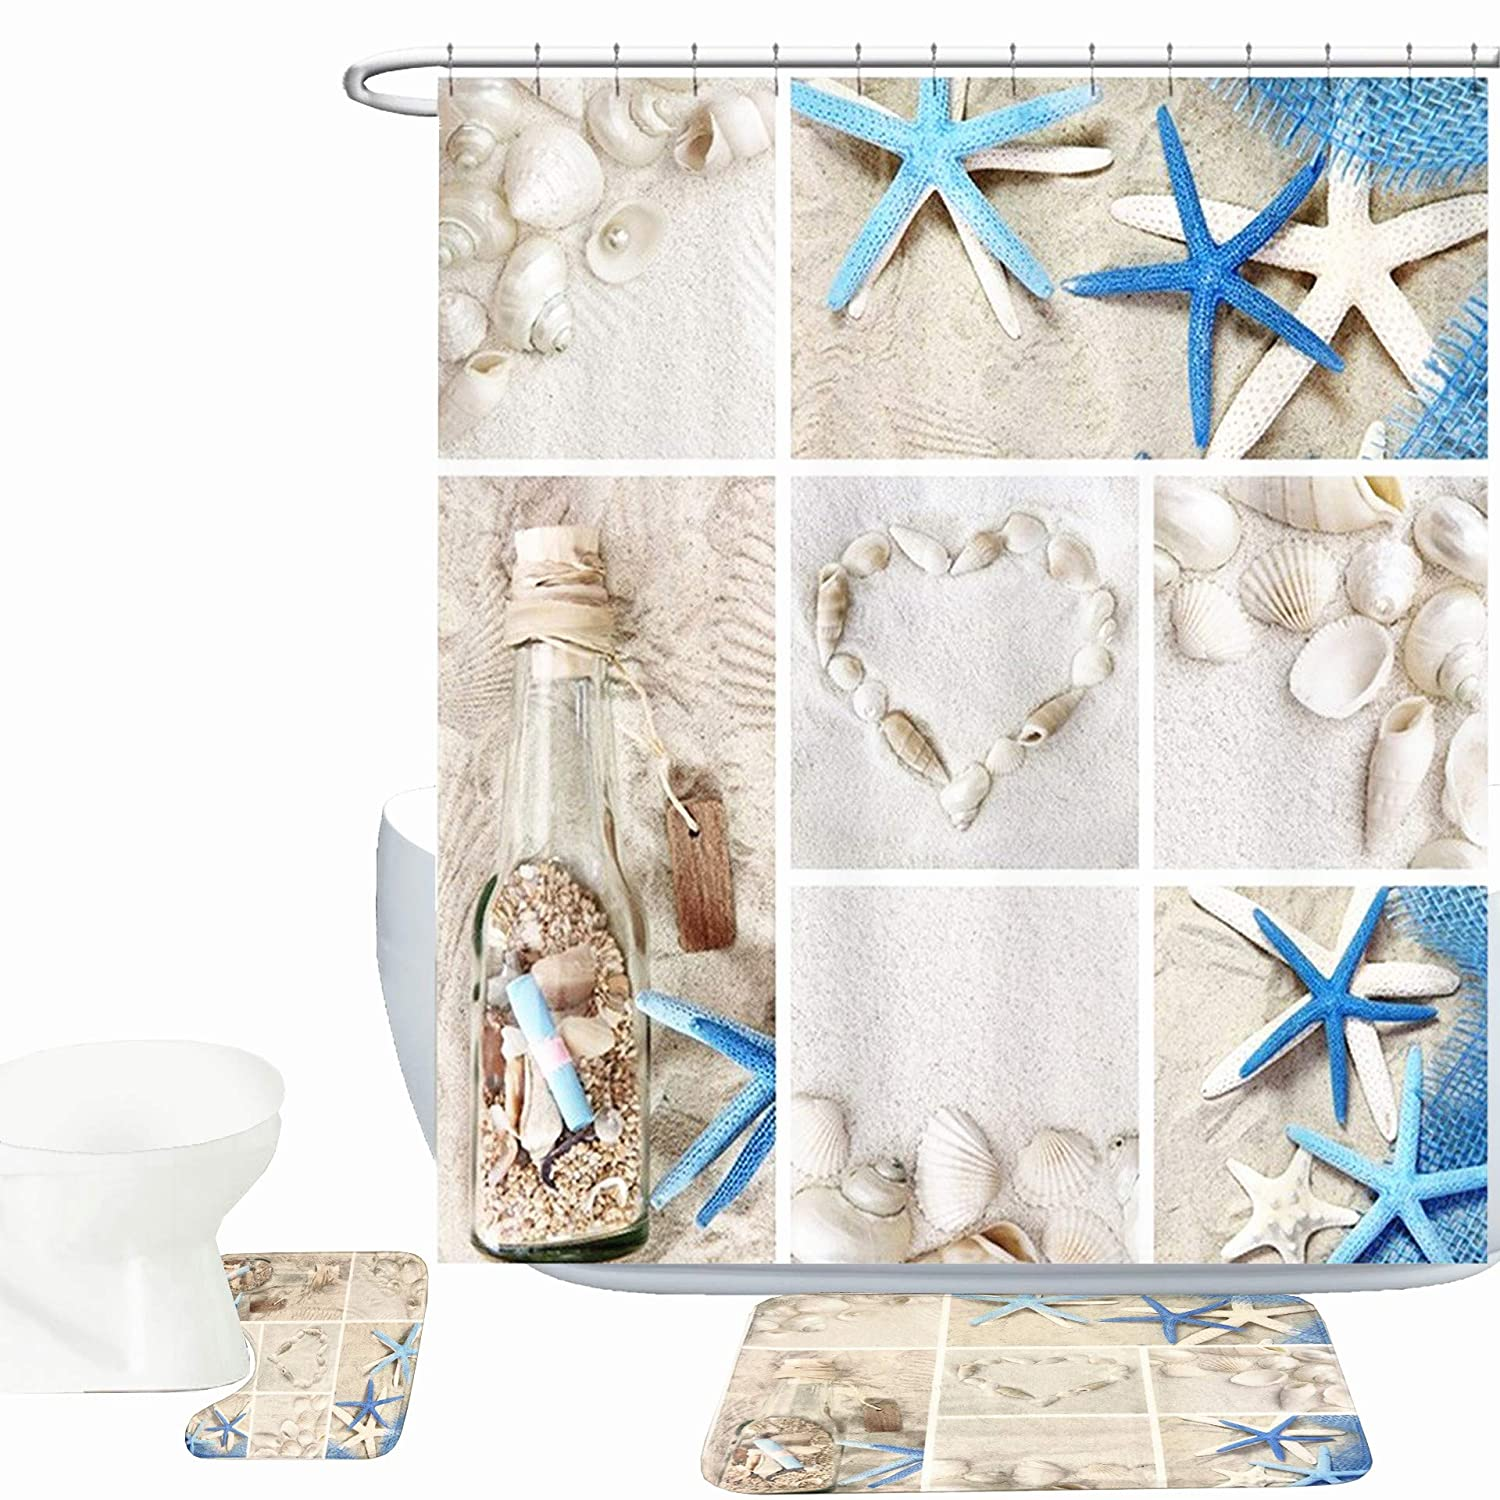 Bearbae 15 Piece Blue Starfish Seashell Starfish Bath Mat Set Shower Curtain Set Wishing Bottle Love Stone Print Bathroom Mat Contour Mat Fabric Shower Curtain with 12 hooks